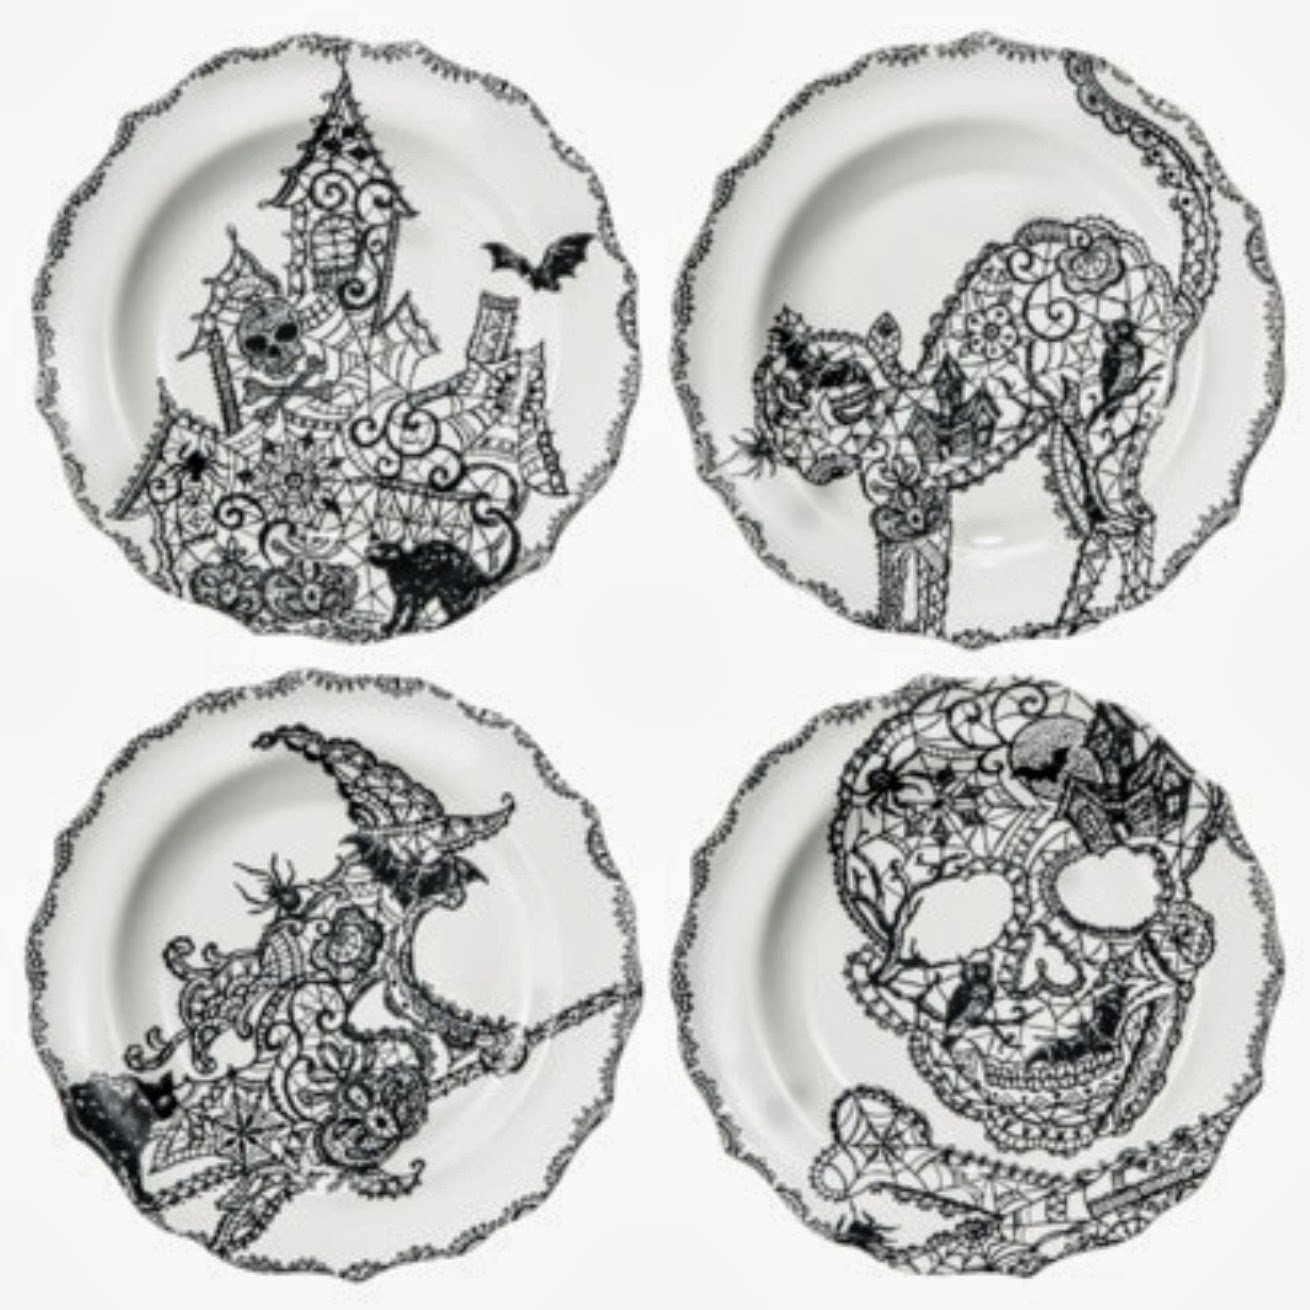 Amazon.com | 222 Fifth Halloween  Wiccan Lace  Snack Party Appetizer Plates 6  Black u0026 White Porcelain Set of 4 Designs Cat Haunted House Skull ...  sc 1 st  Amazon.com & Amazon.com | 222 Fifth Halloween